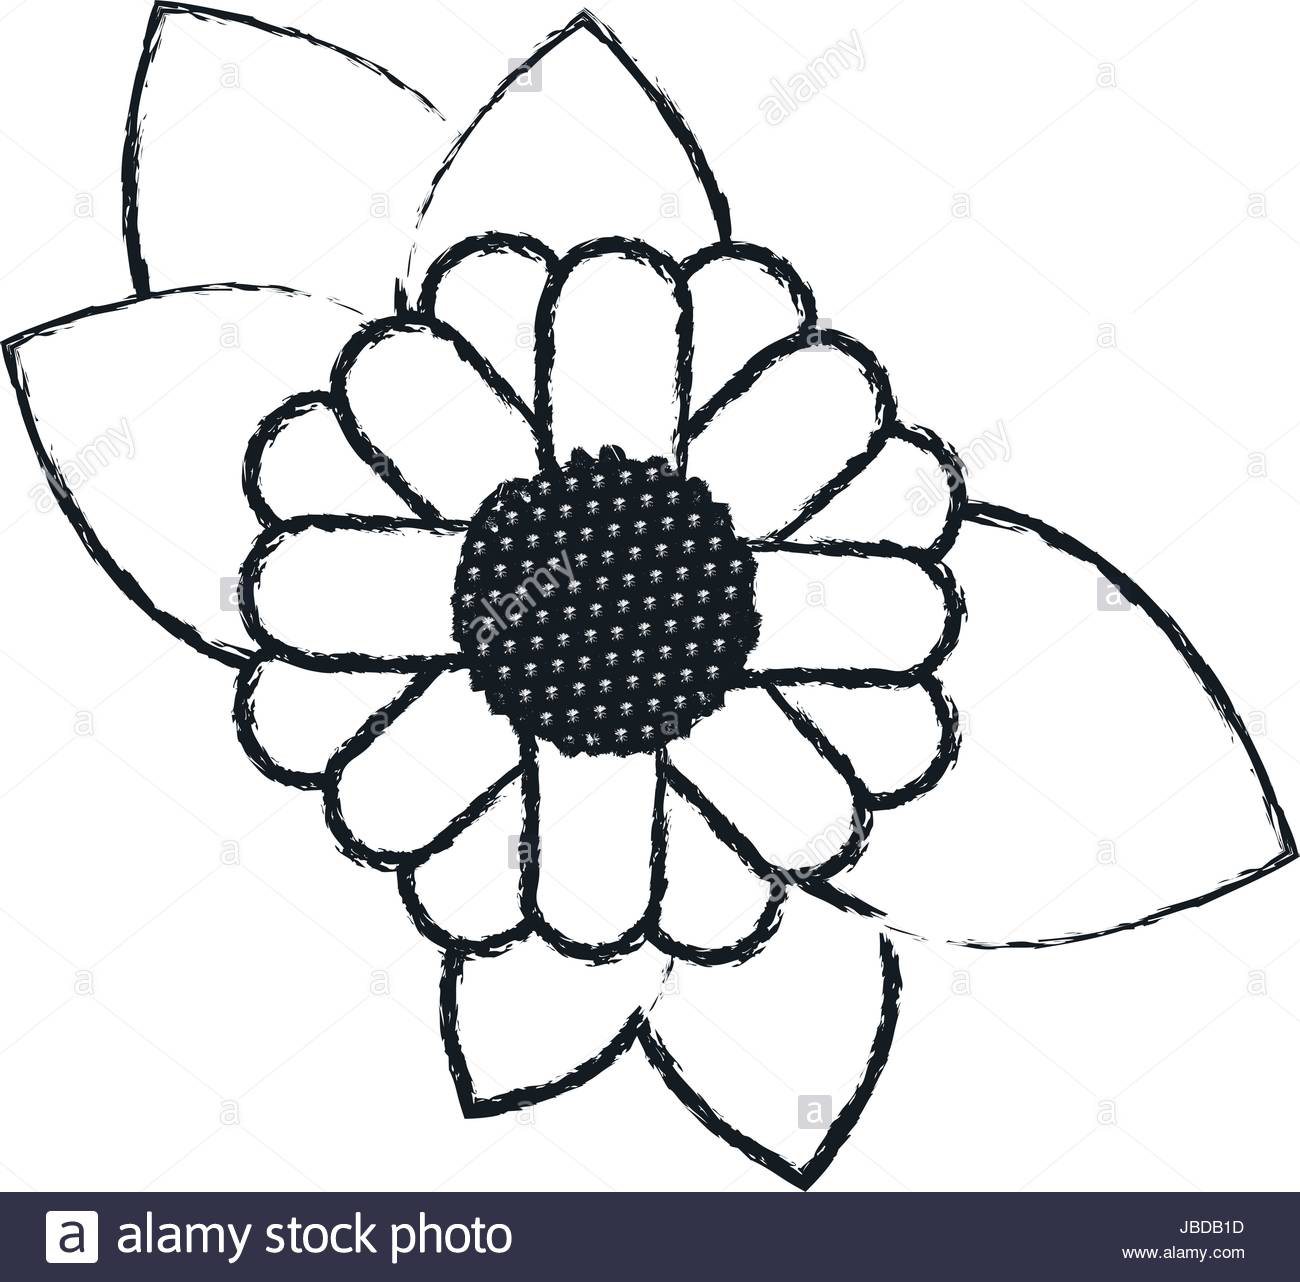 1300x1282 Monochrome Blurred Silhouette Of Abstract Sunflower With Leaves